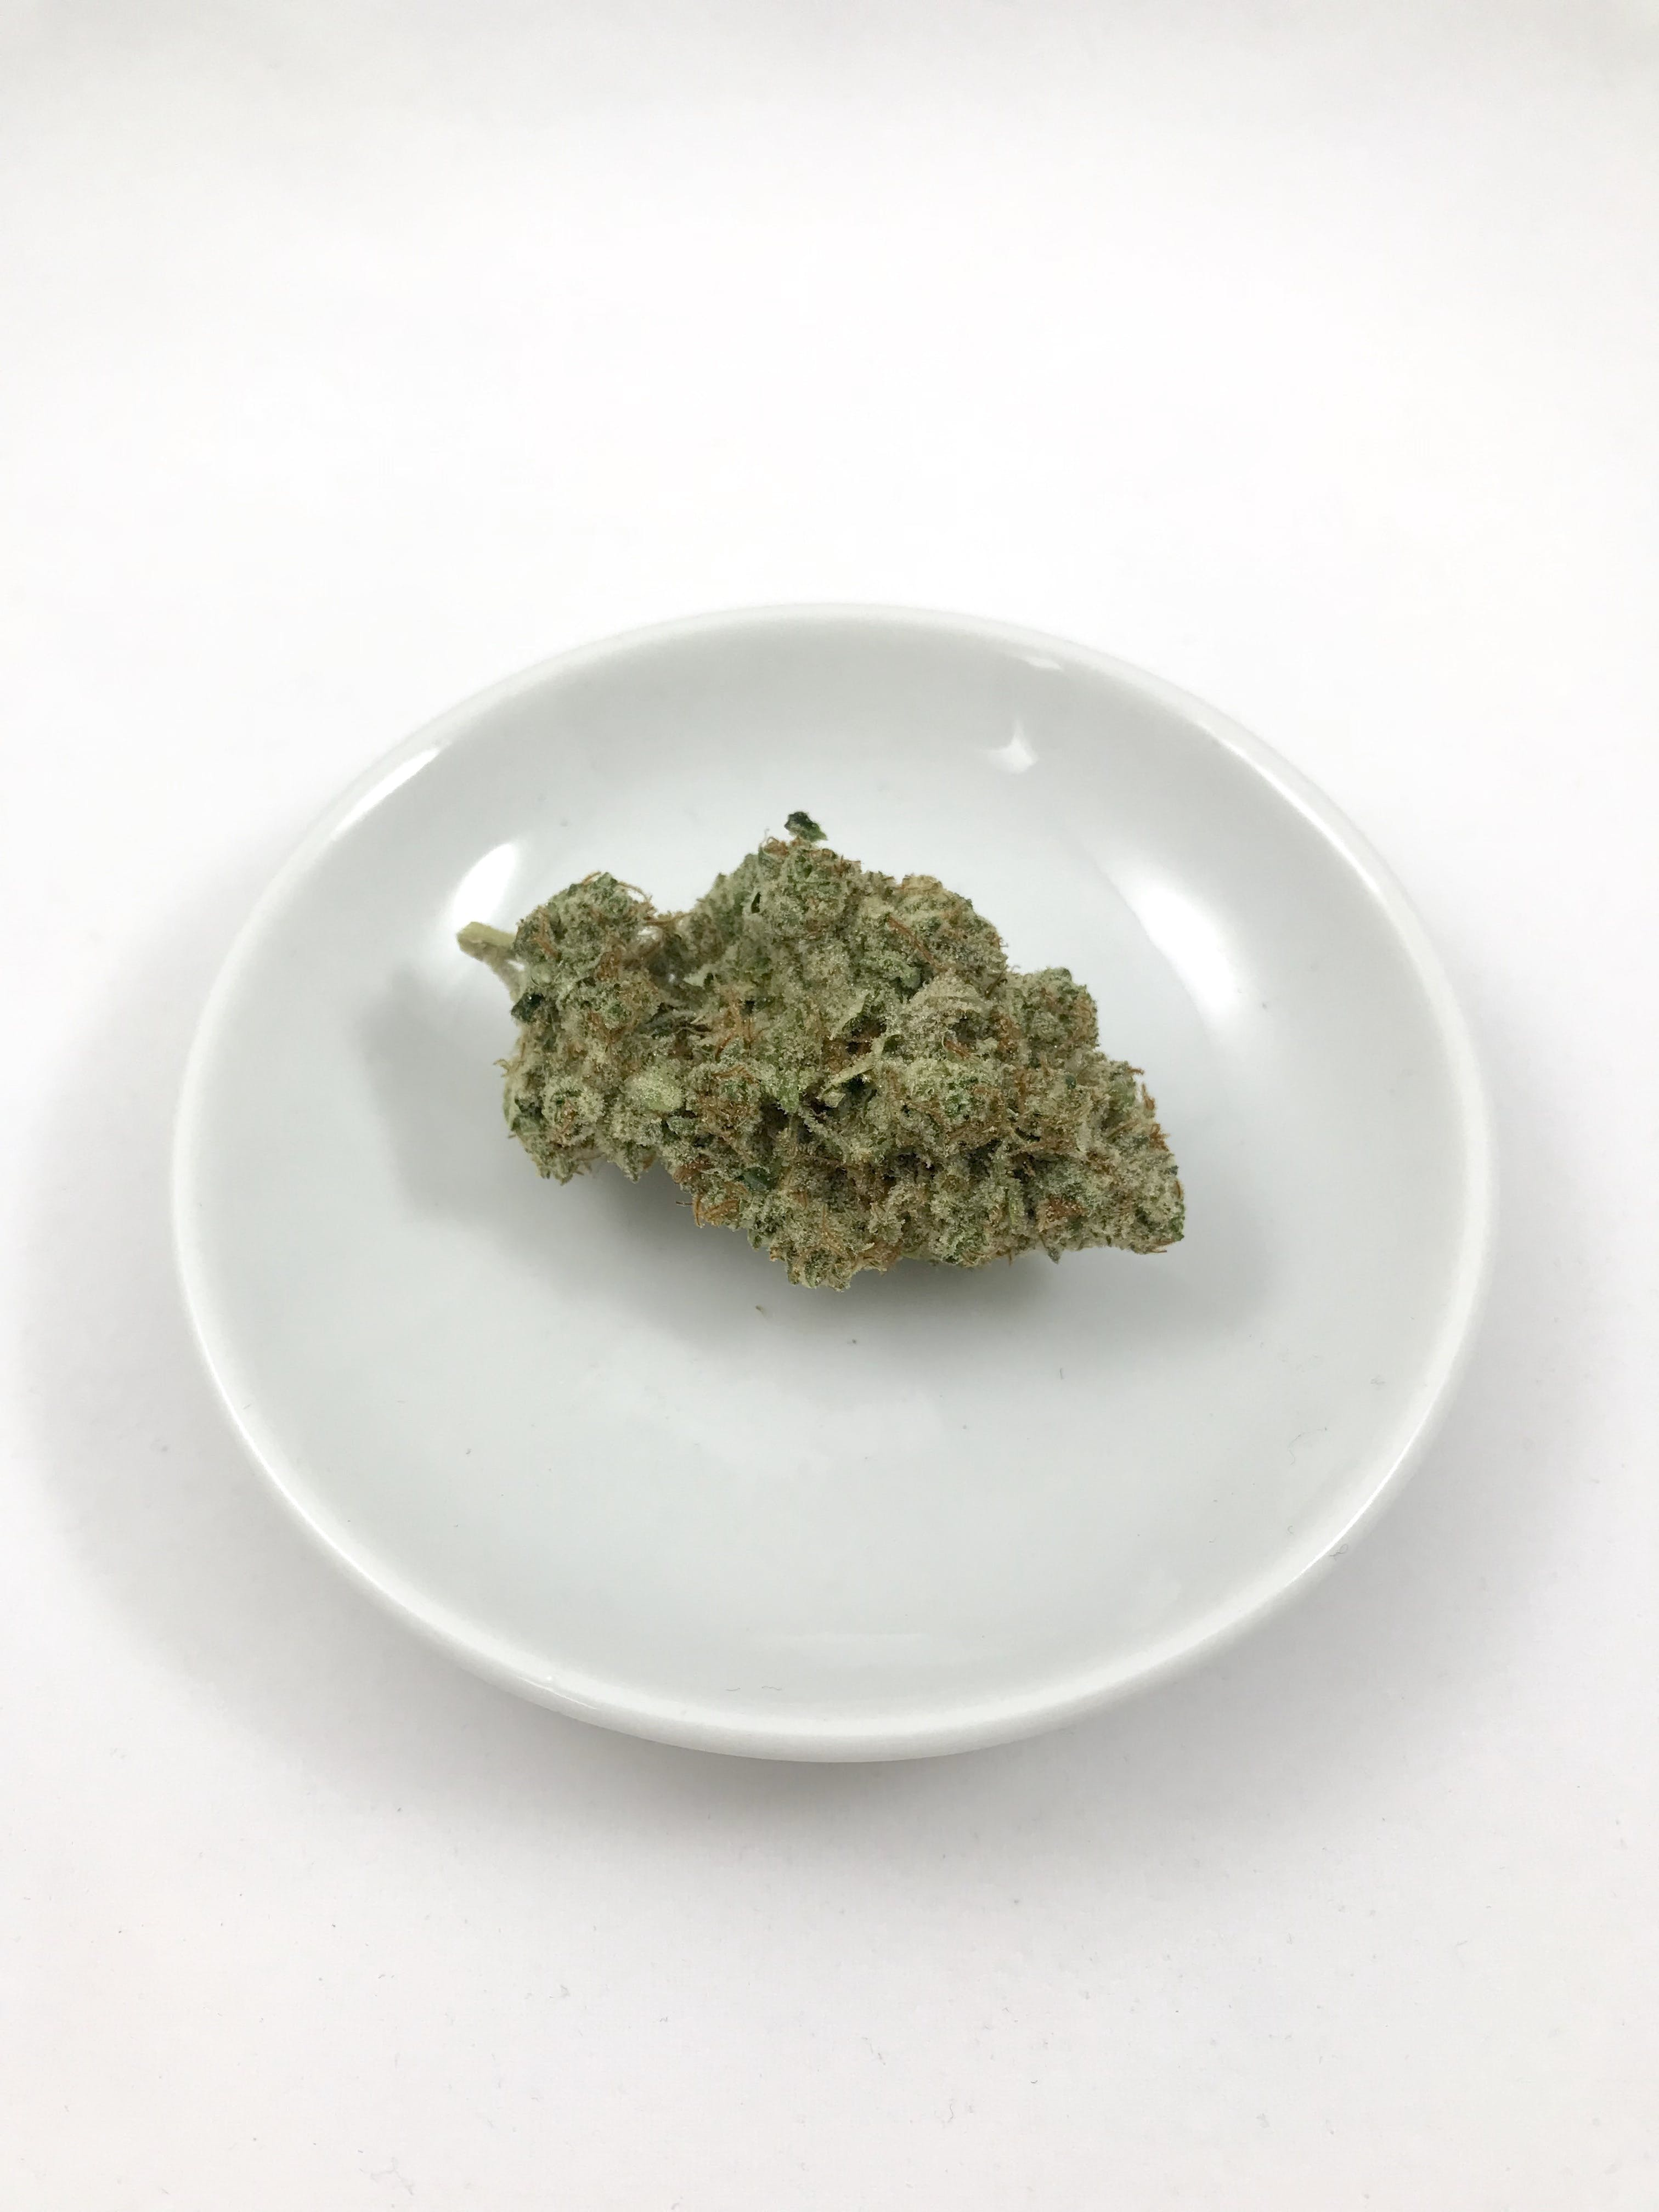 hybrid-med-resin-ranchers-12-a-1oz-special-triangle-kush-tangie